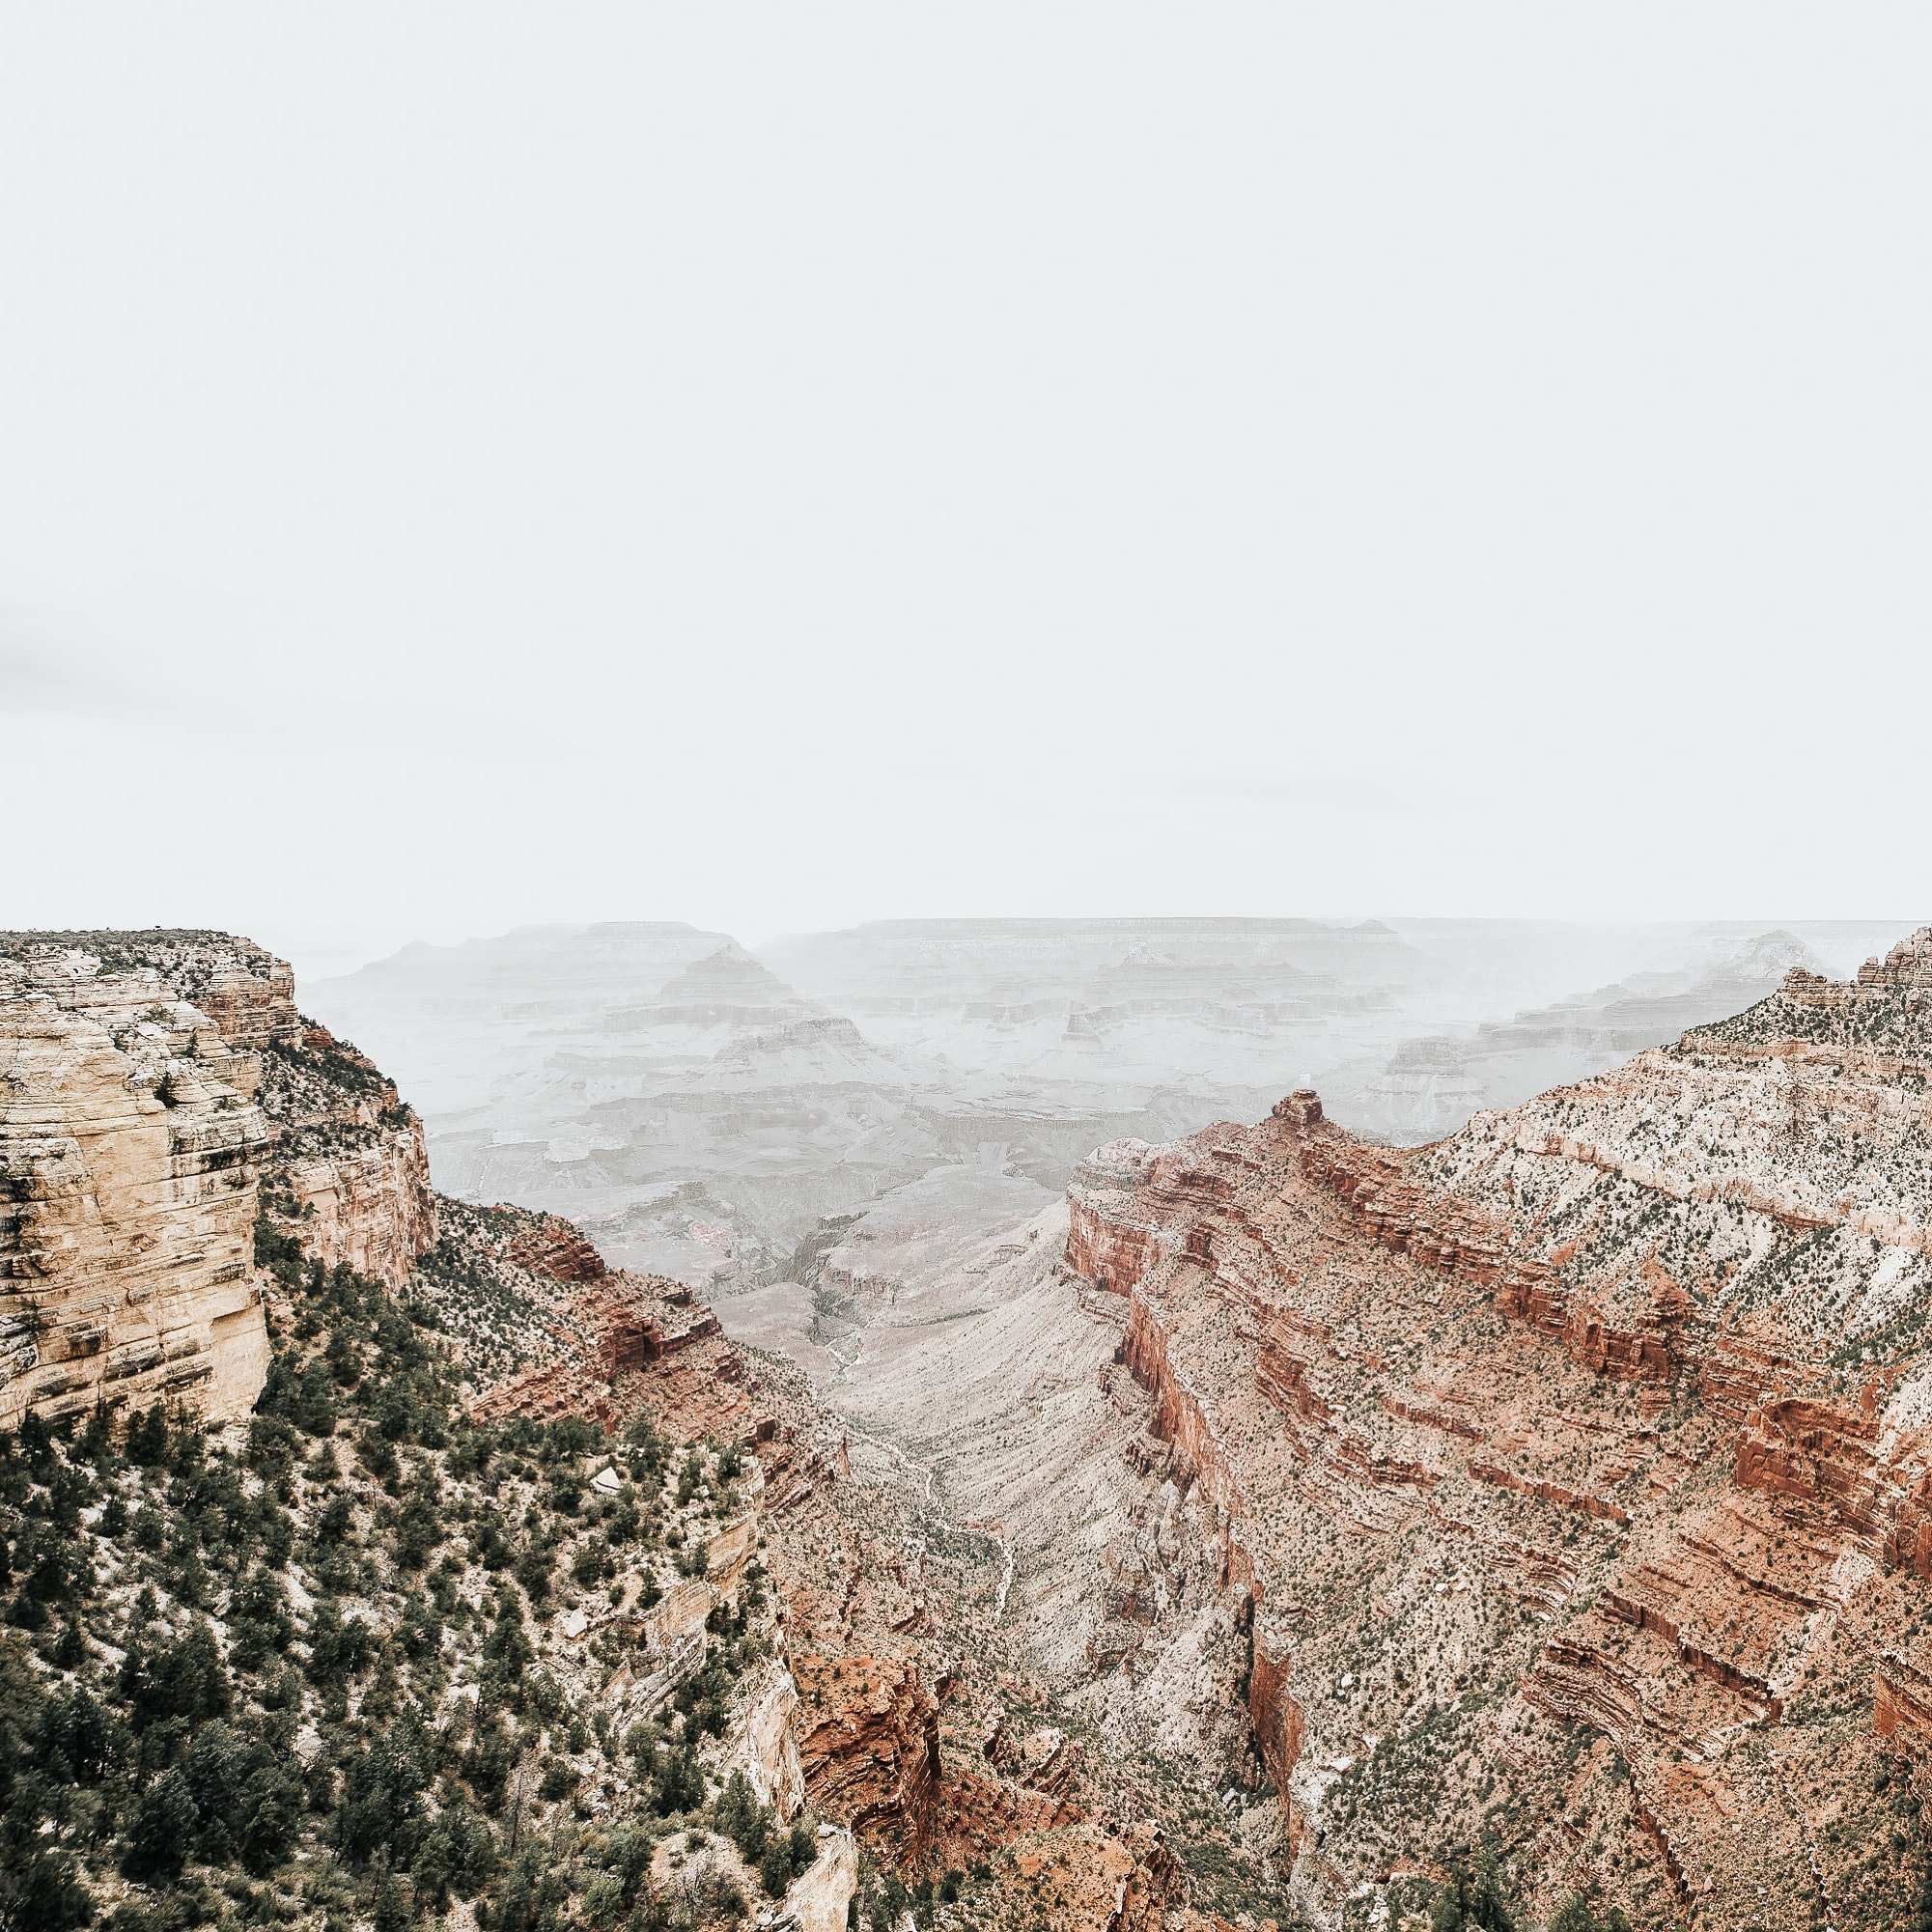 Overcast sky over the desert cliffs of Grand Canyon National Park